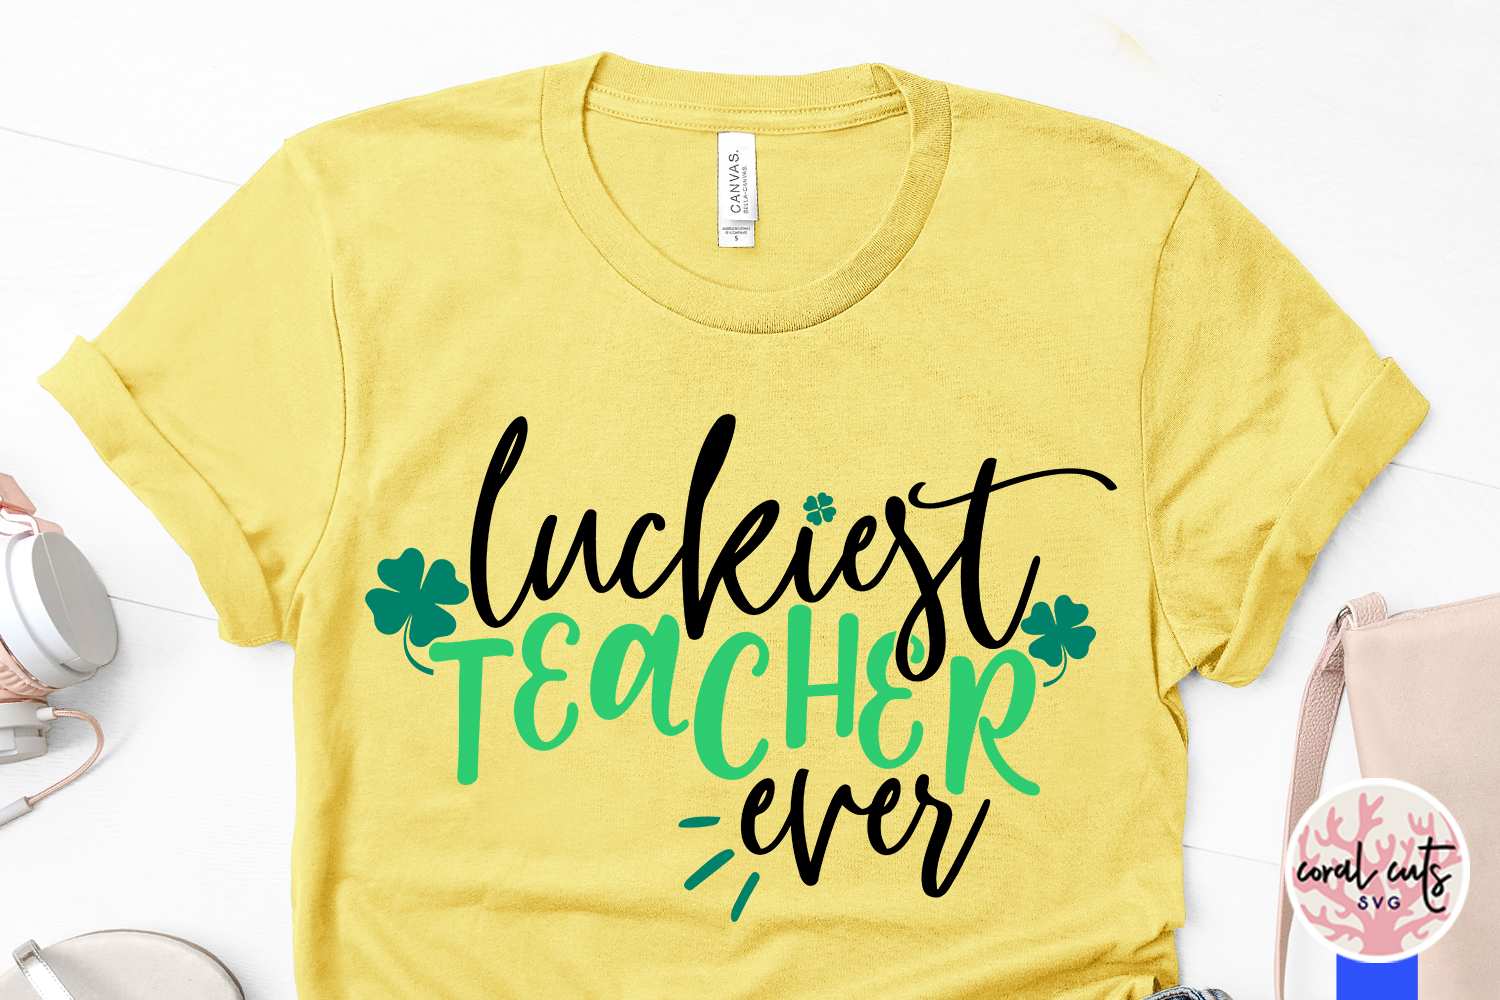 Luckiest teacher ever - St. Patrick's Day SVG EPS DXF PNG example image 3